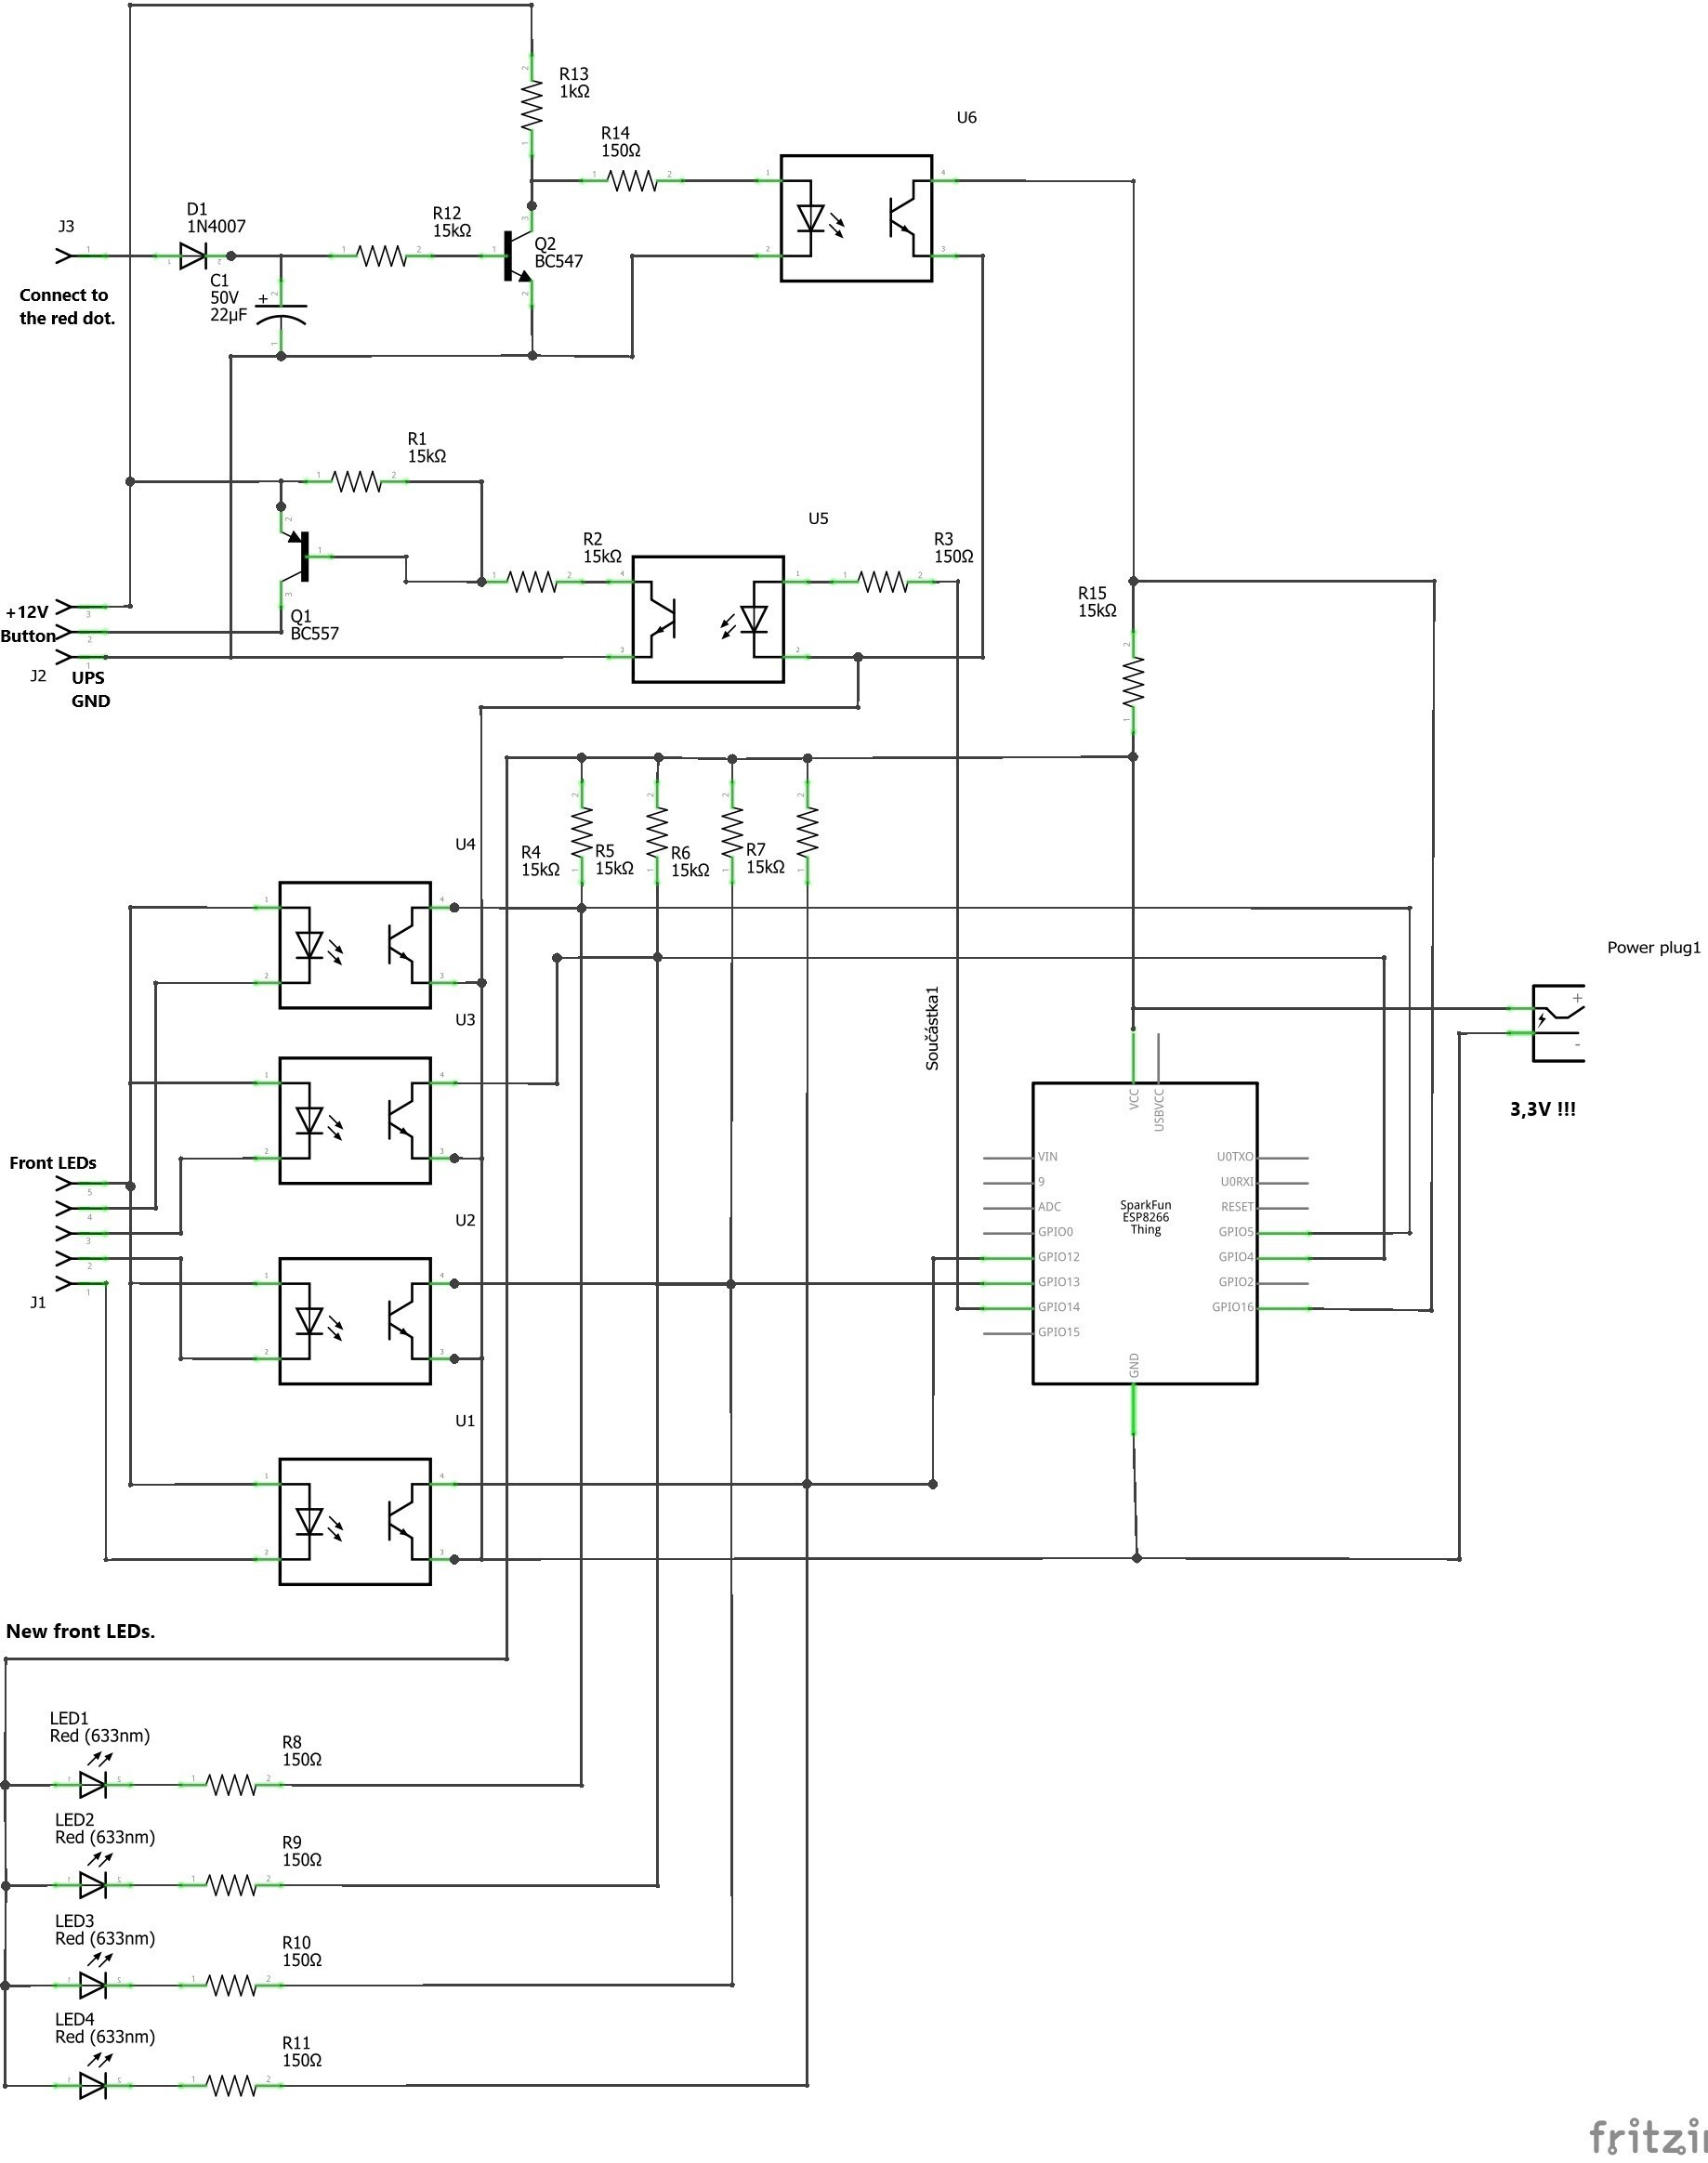 Old UPS with WiFi Connection - ster.io Ups Schematics And Diagrams on ups wiring diagram, circuit diagram, ups backup diagram, ups installation diagram, smps diagram, ac to dc converter diagram, as is to be diagram, ups inverter diagram, ups transformer diagram, ups power diagram, ups pcb diagram, 3 wire wiring diagram, ups line diagram, led wiring diagram, ups block diagram, apc ups diagram, ups cable diagram, electrical system diagram, how ups works diagram, exploded diagram,